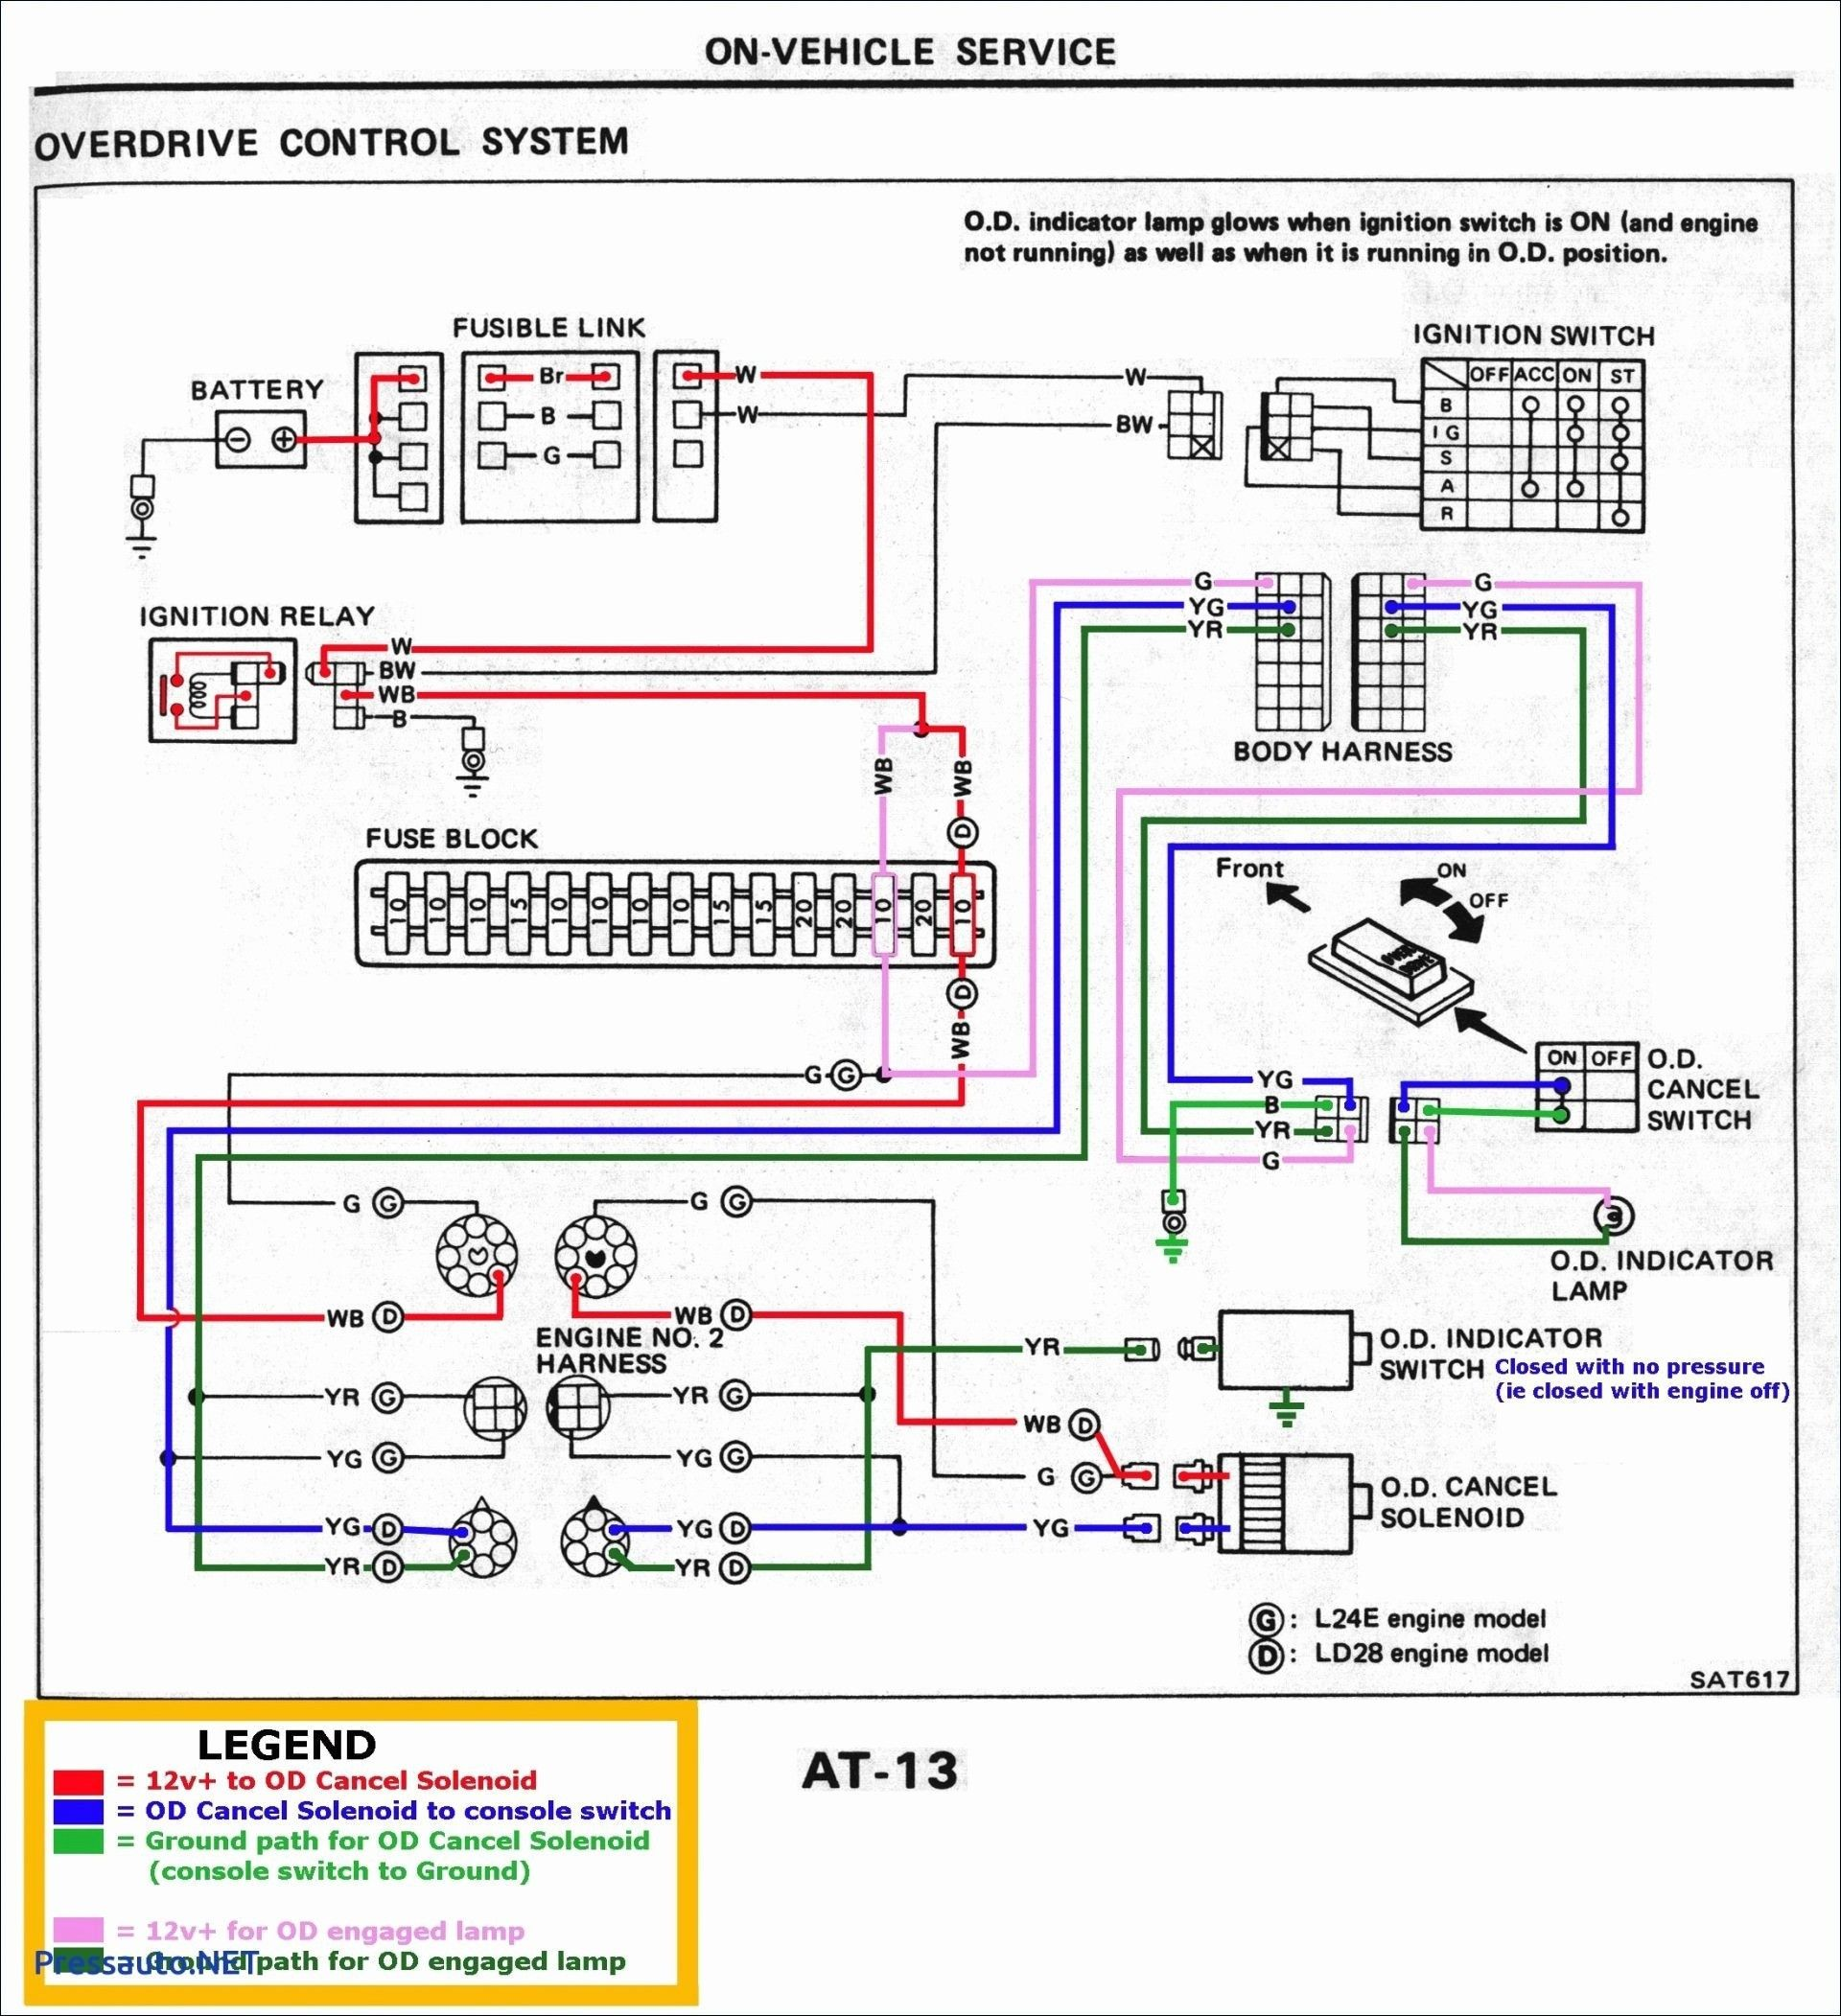 [SODI_2457]   Vista 20p Wiring Diagram Elegant in 2020 | Electrical wiring diagram,  Trailer light wiring, Trailer wiring diagram | Vista Wiring Diagrams |  | Pinterest